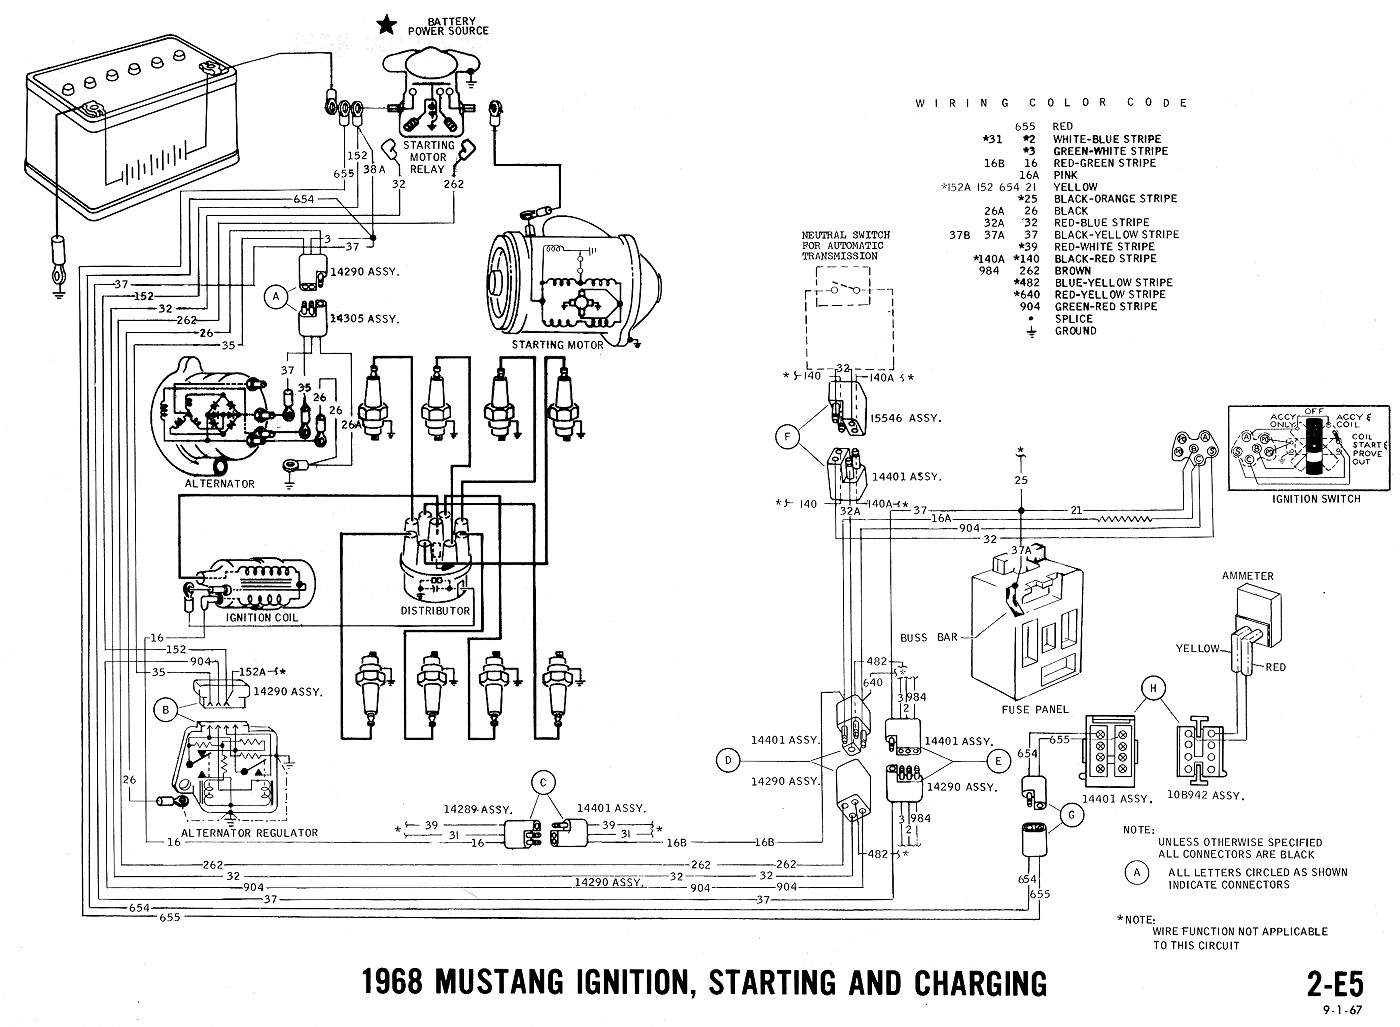 1997 mercury grand marquis fuse box diagram component relationship 1968 mustang wiring diagrams | evolving software